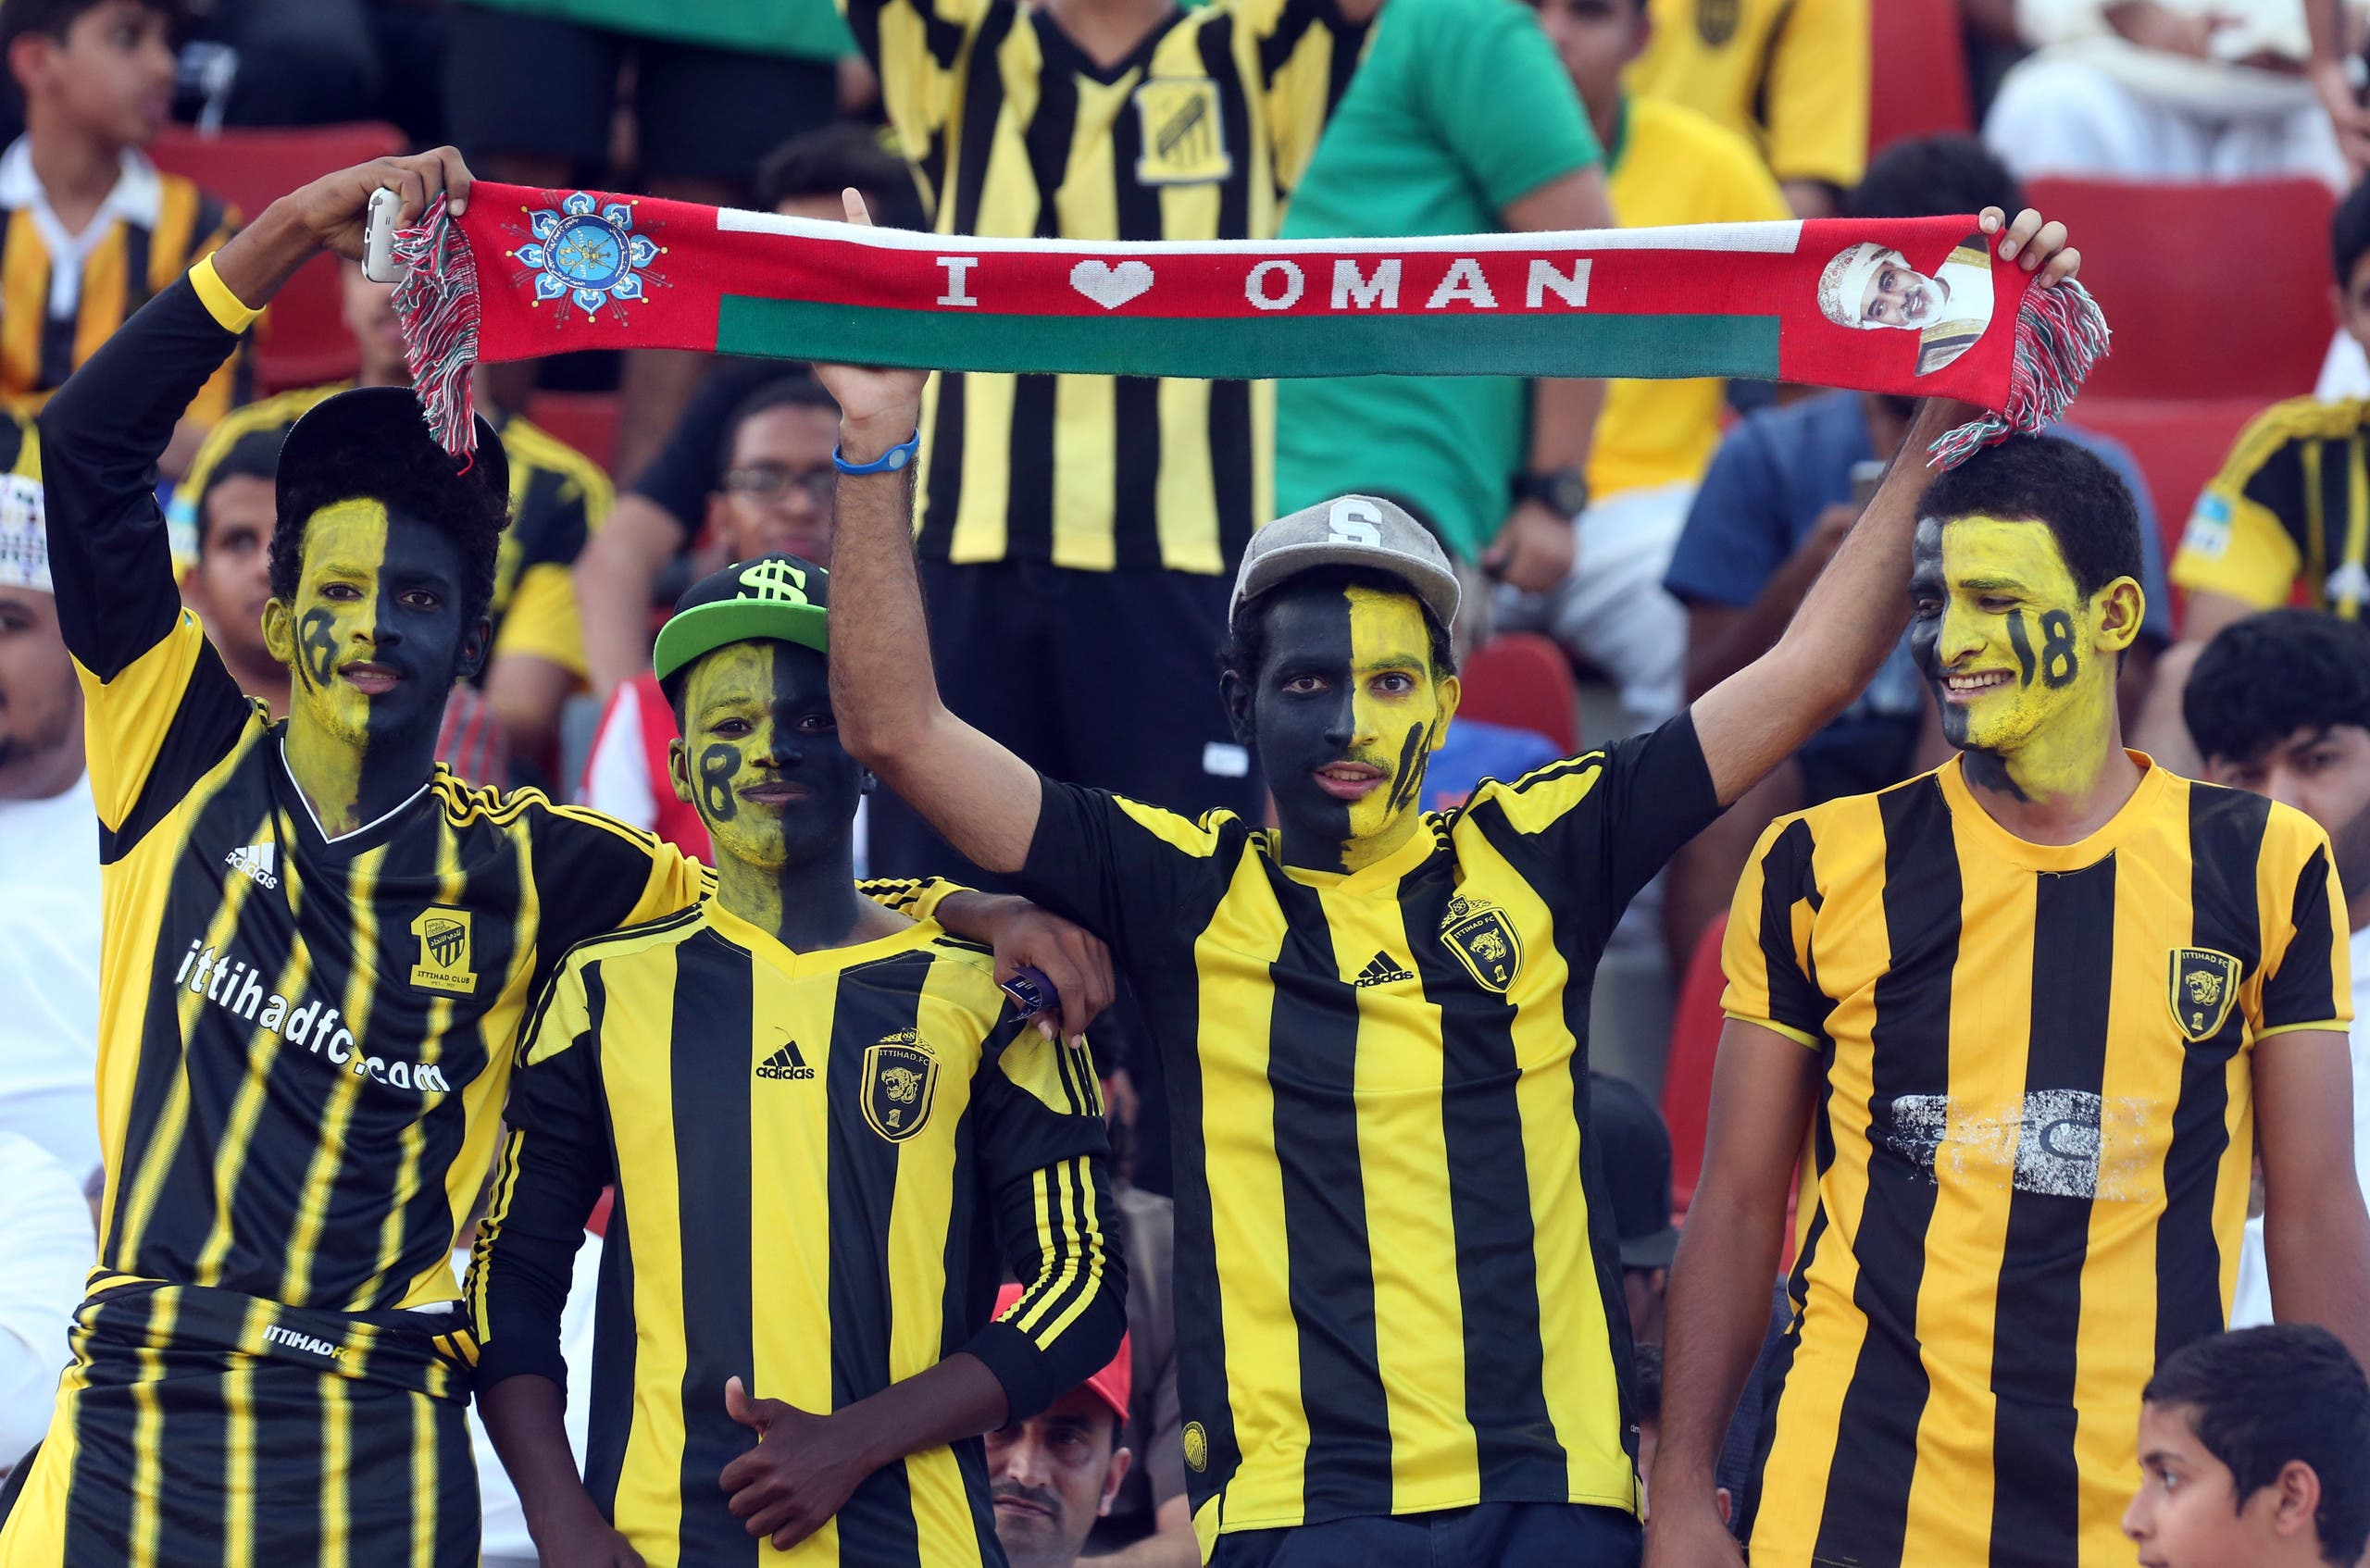 Saudi's Al-Ittihad club fans cheer on their team during their Asian Champions League group A football match against Iran's Sepahan club at the Sultan Qabous stadium in Muscat on May 4, 2016.  MOHAMMED MAHJOUB / AFP